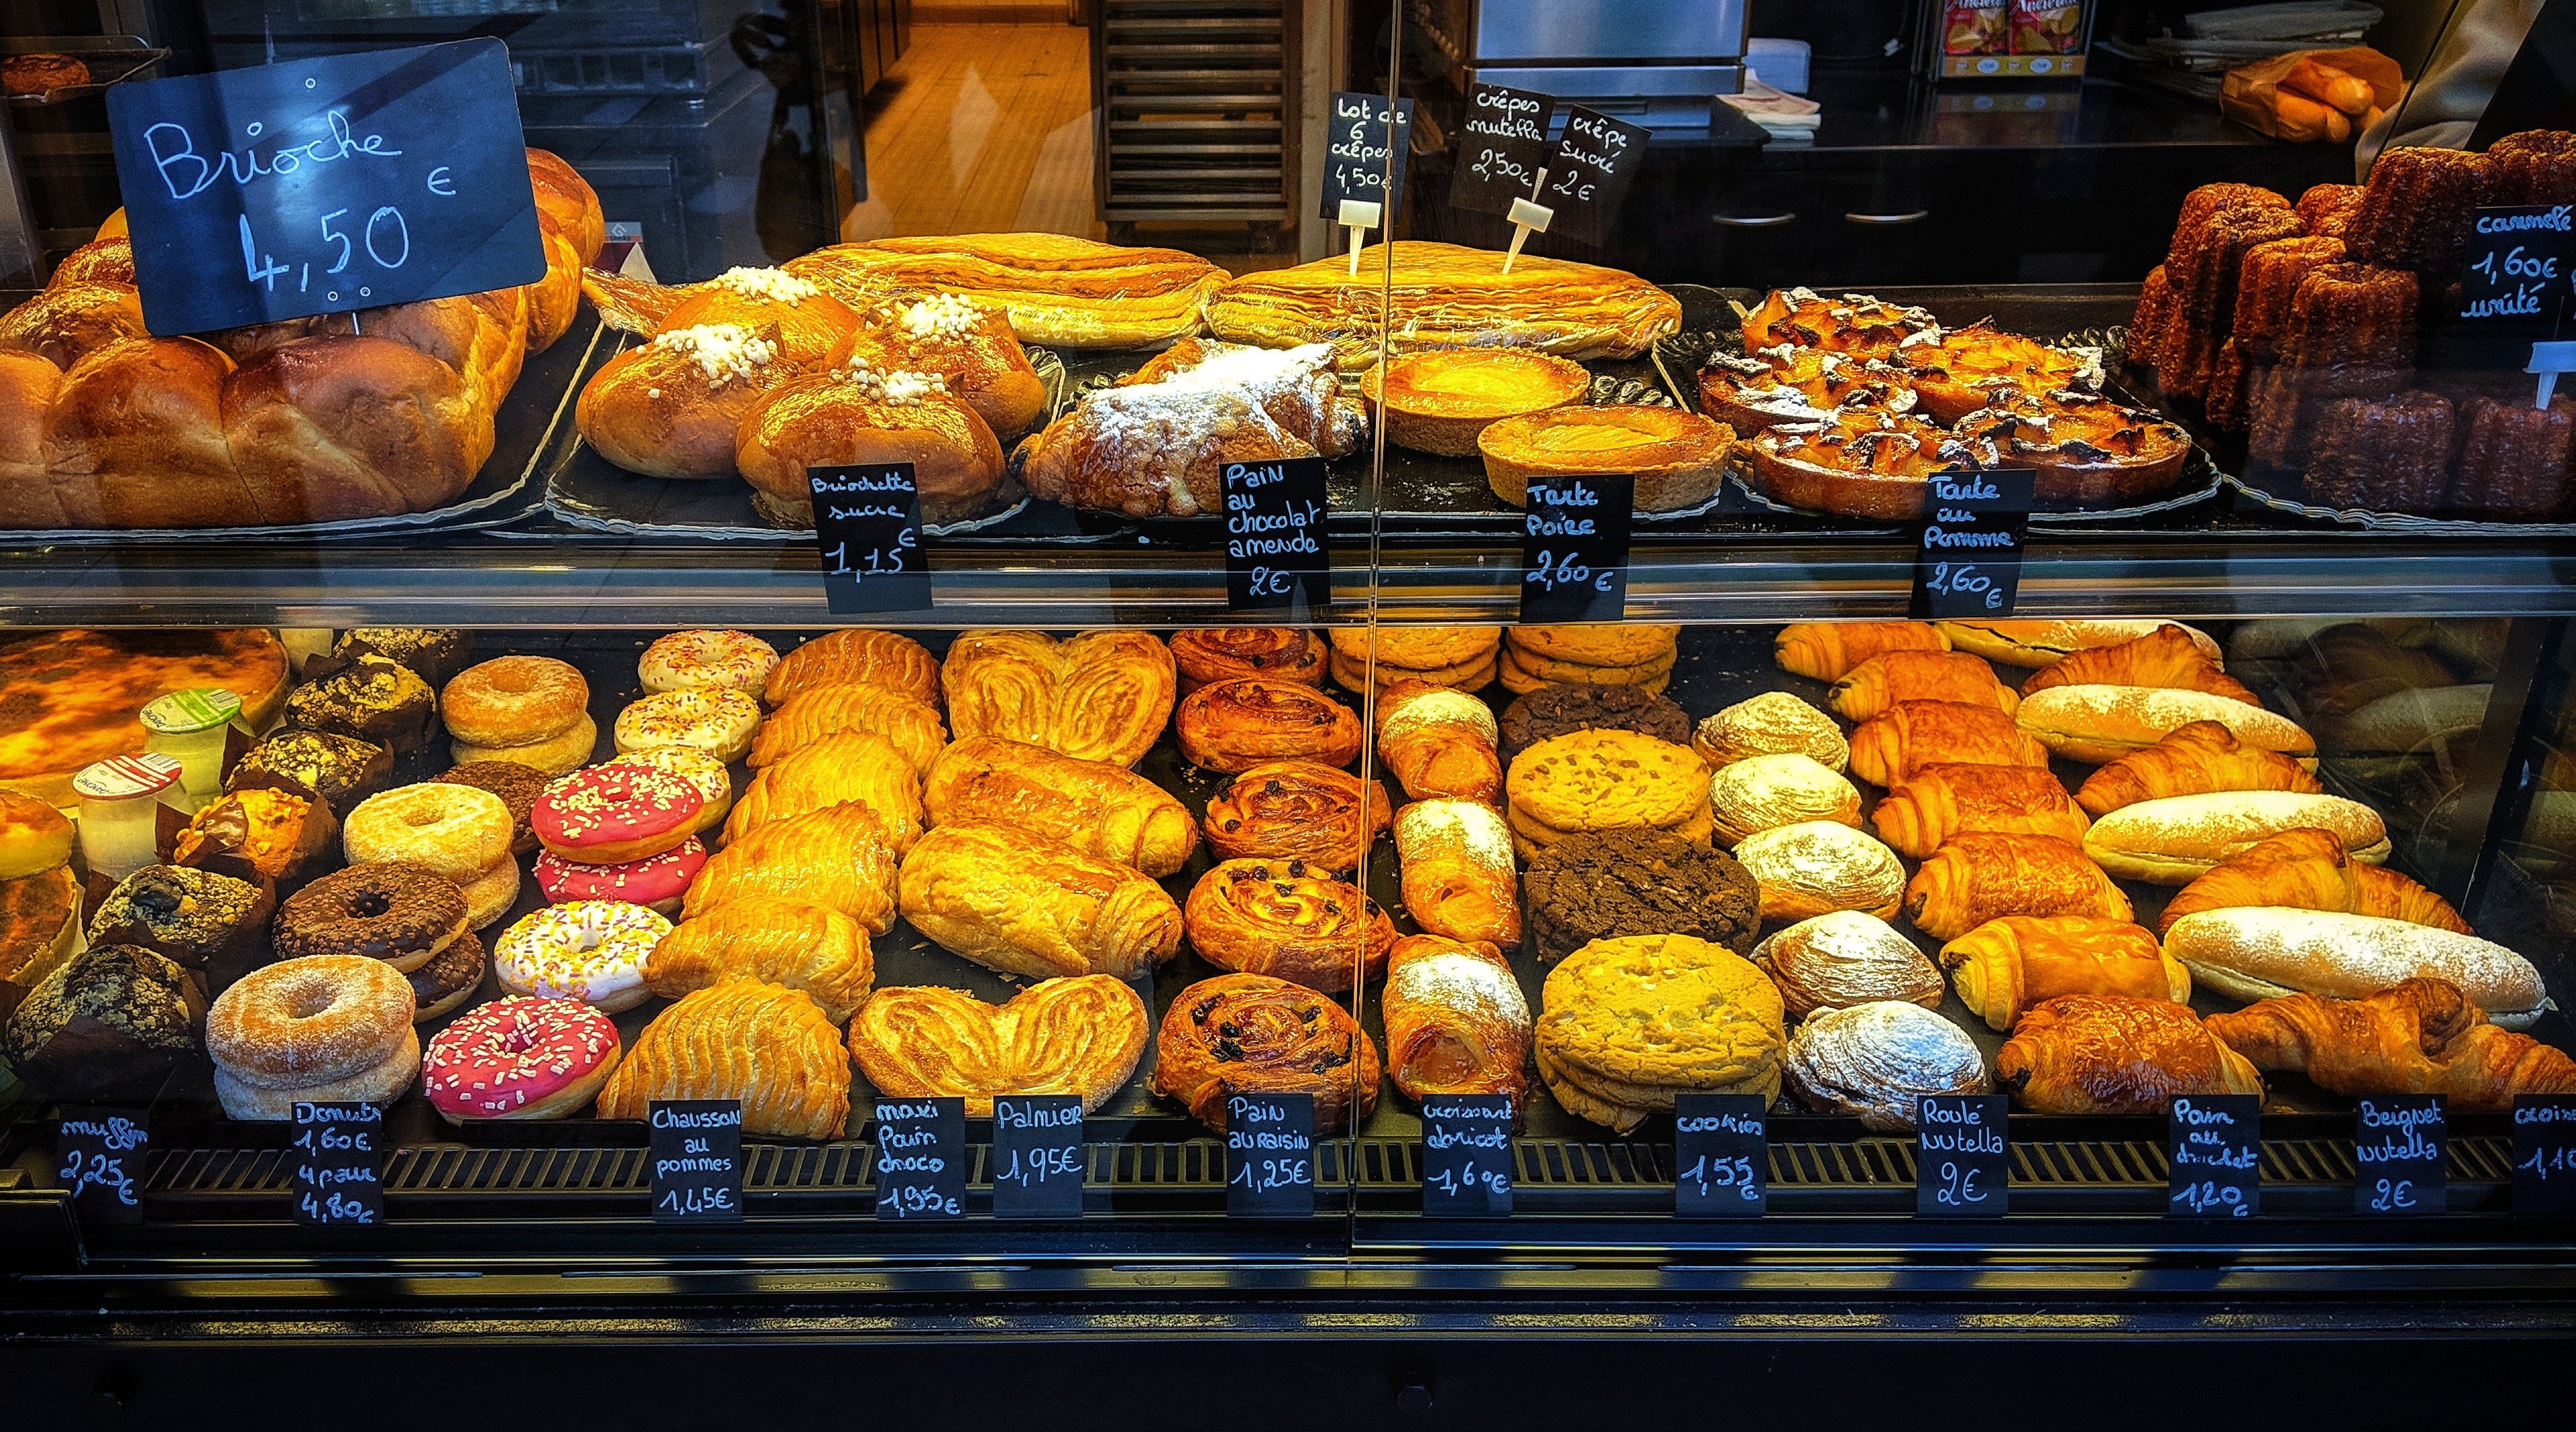 File:Typical French bakery pastries.jpg - Wikimedia Commons